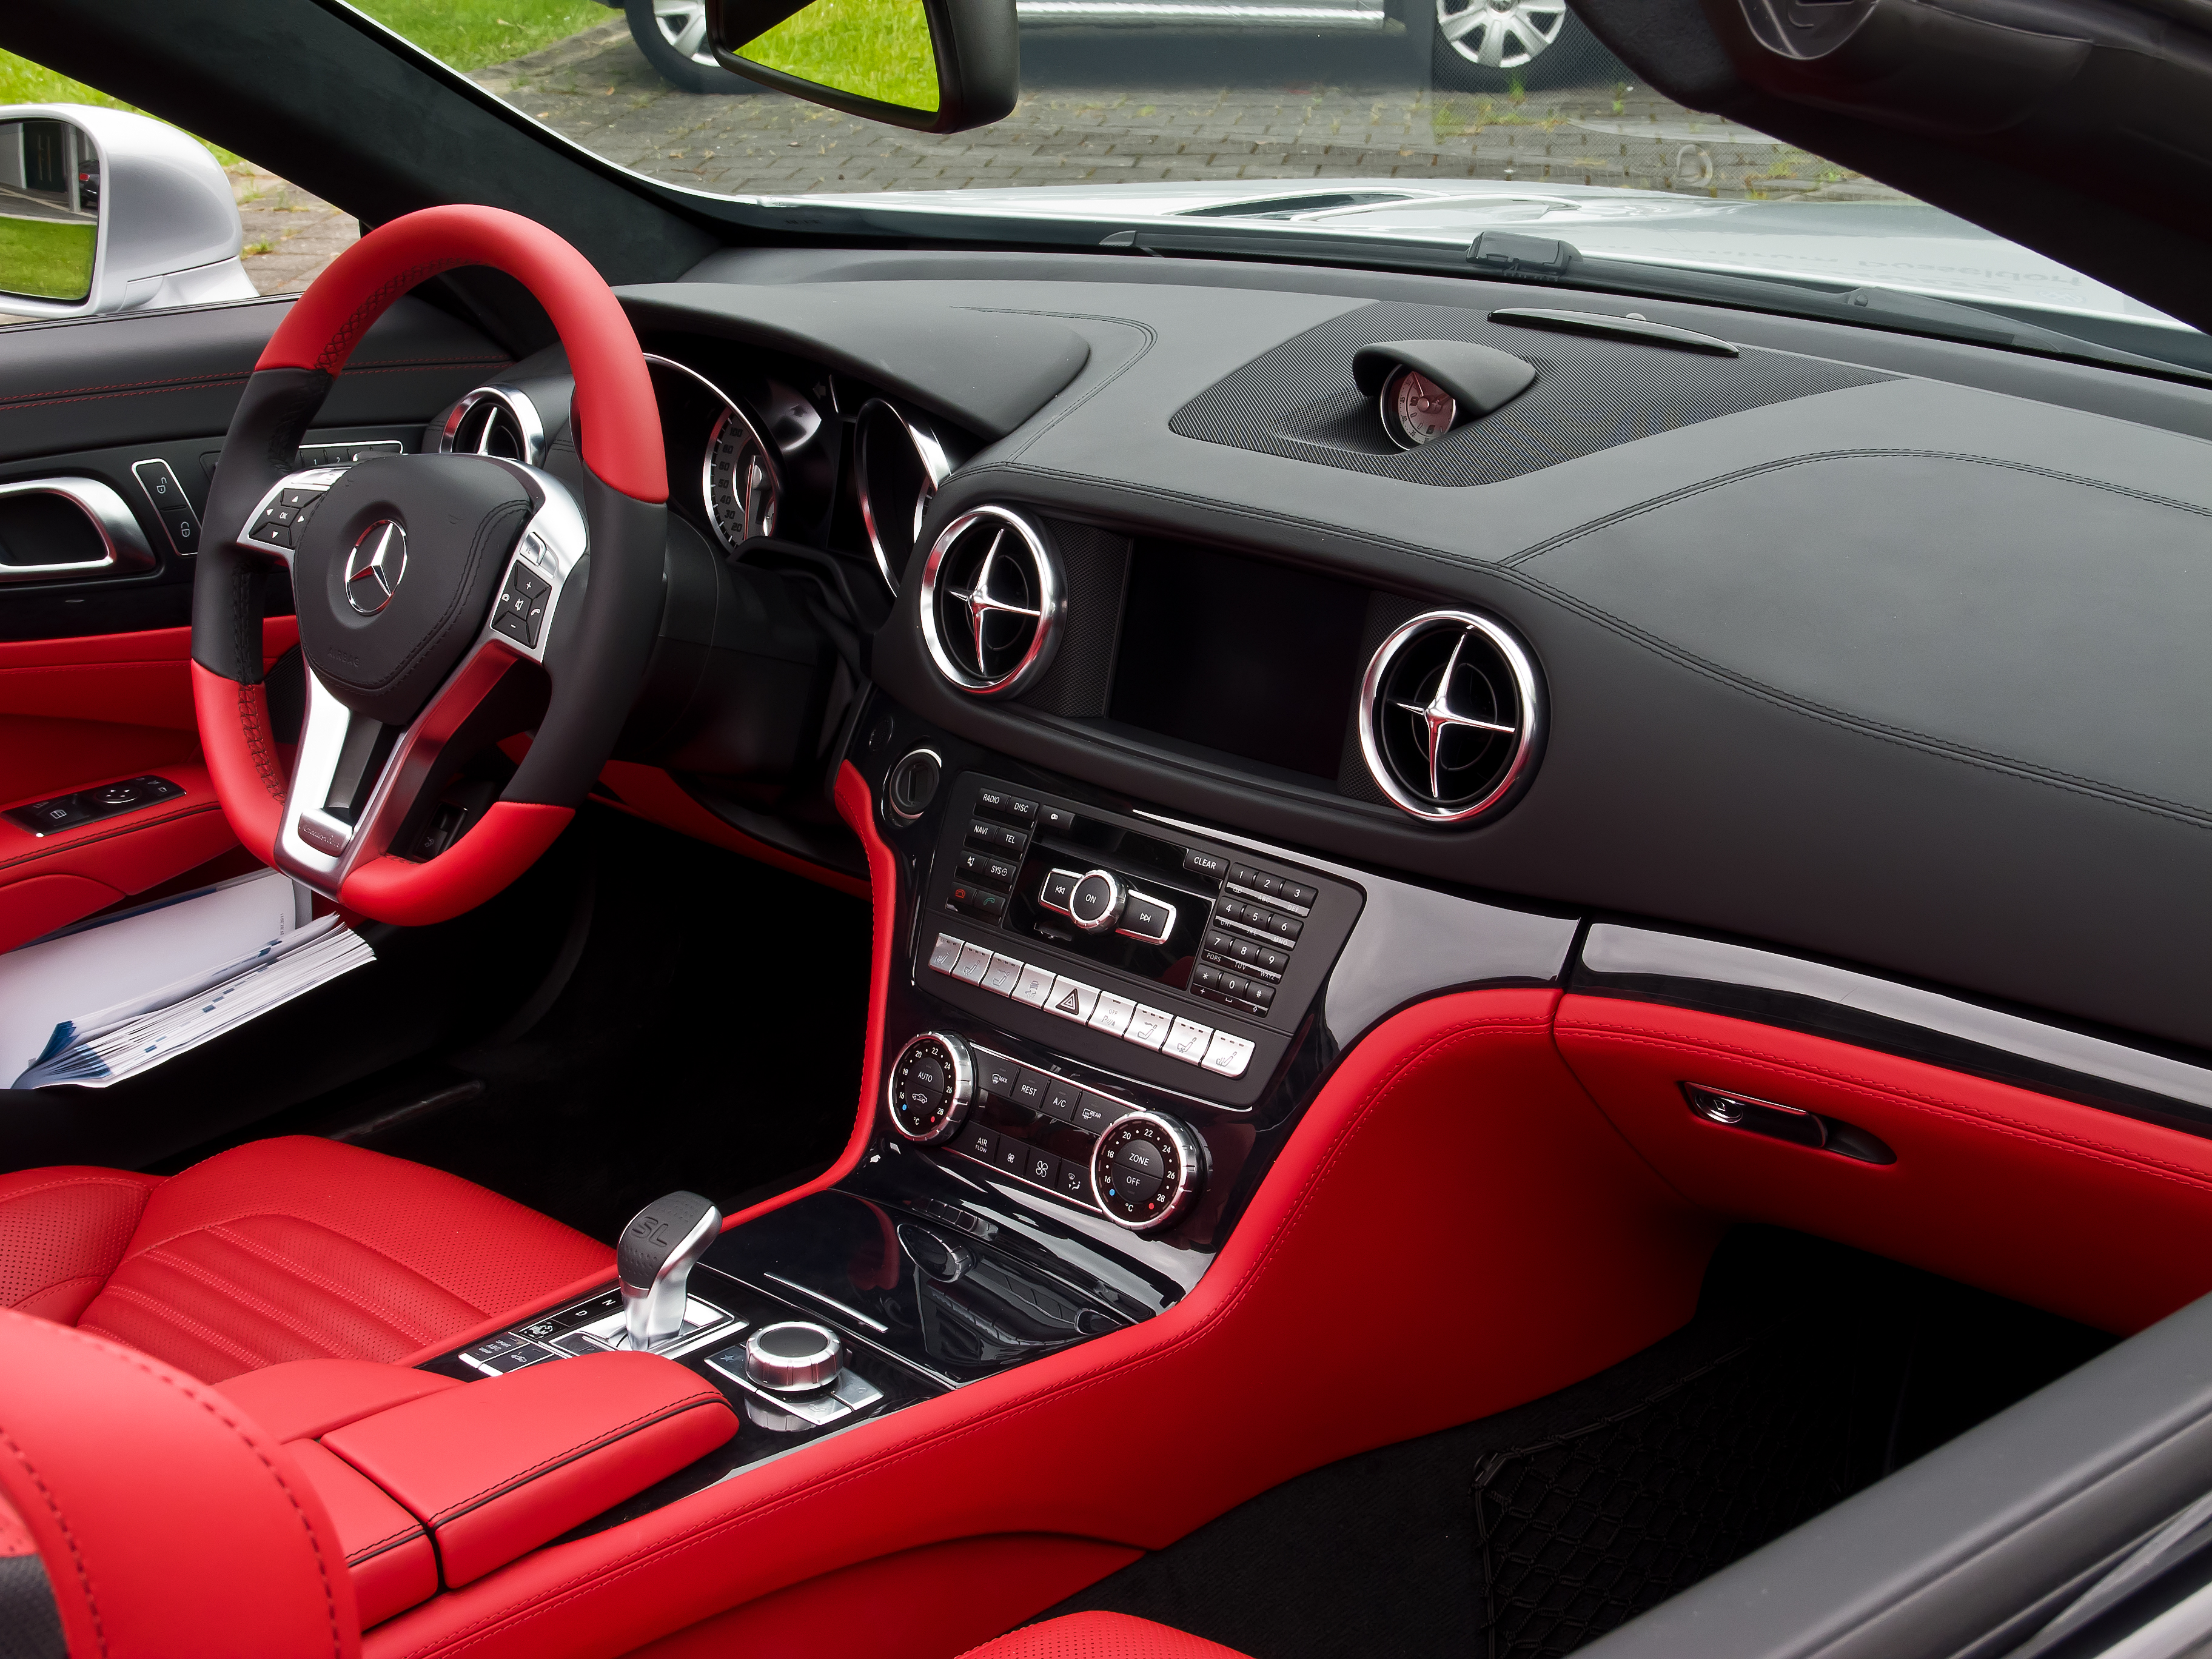 file mercedes benz sl 350 r 231 innenraum 22 mai 2013 d wikimedia commons. Black Bedroom Furniture Sets. Home Design Ideas